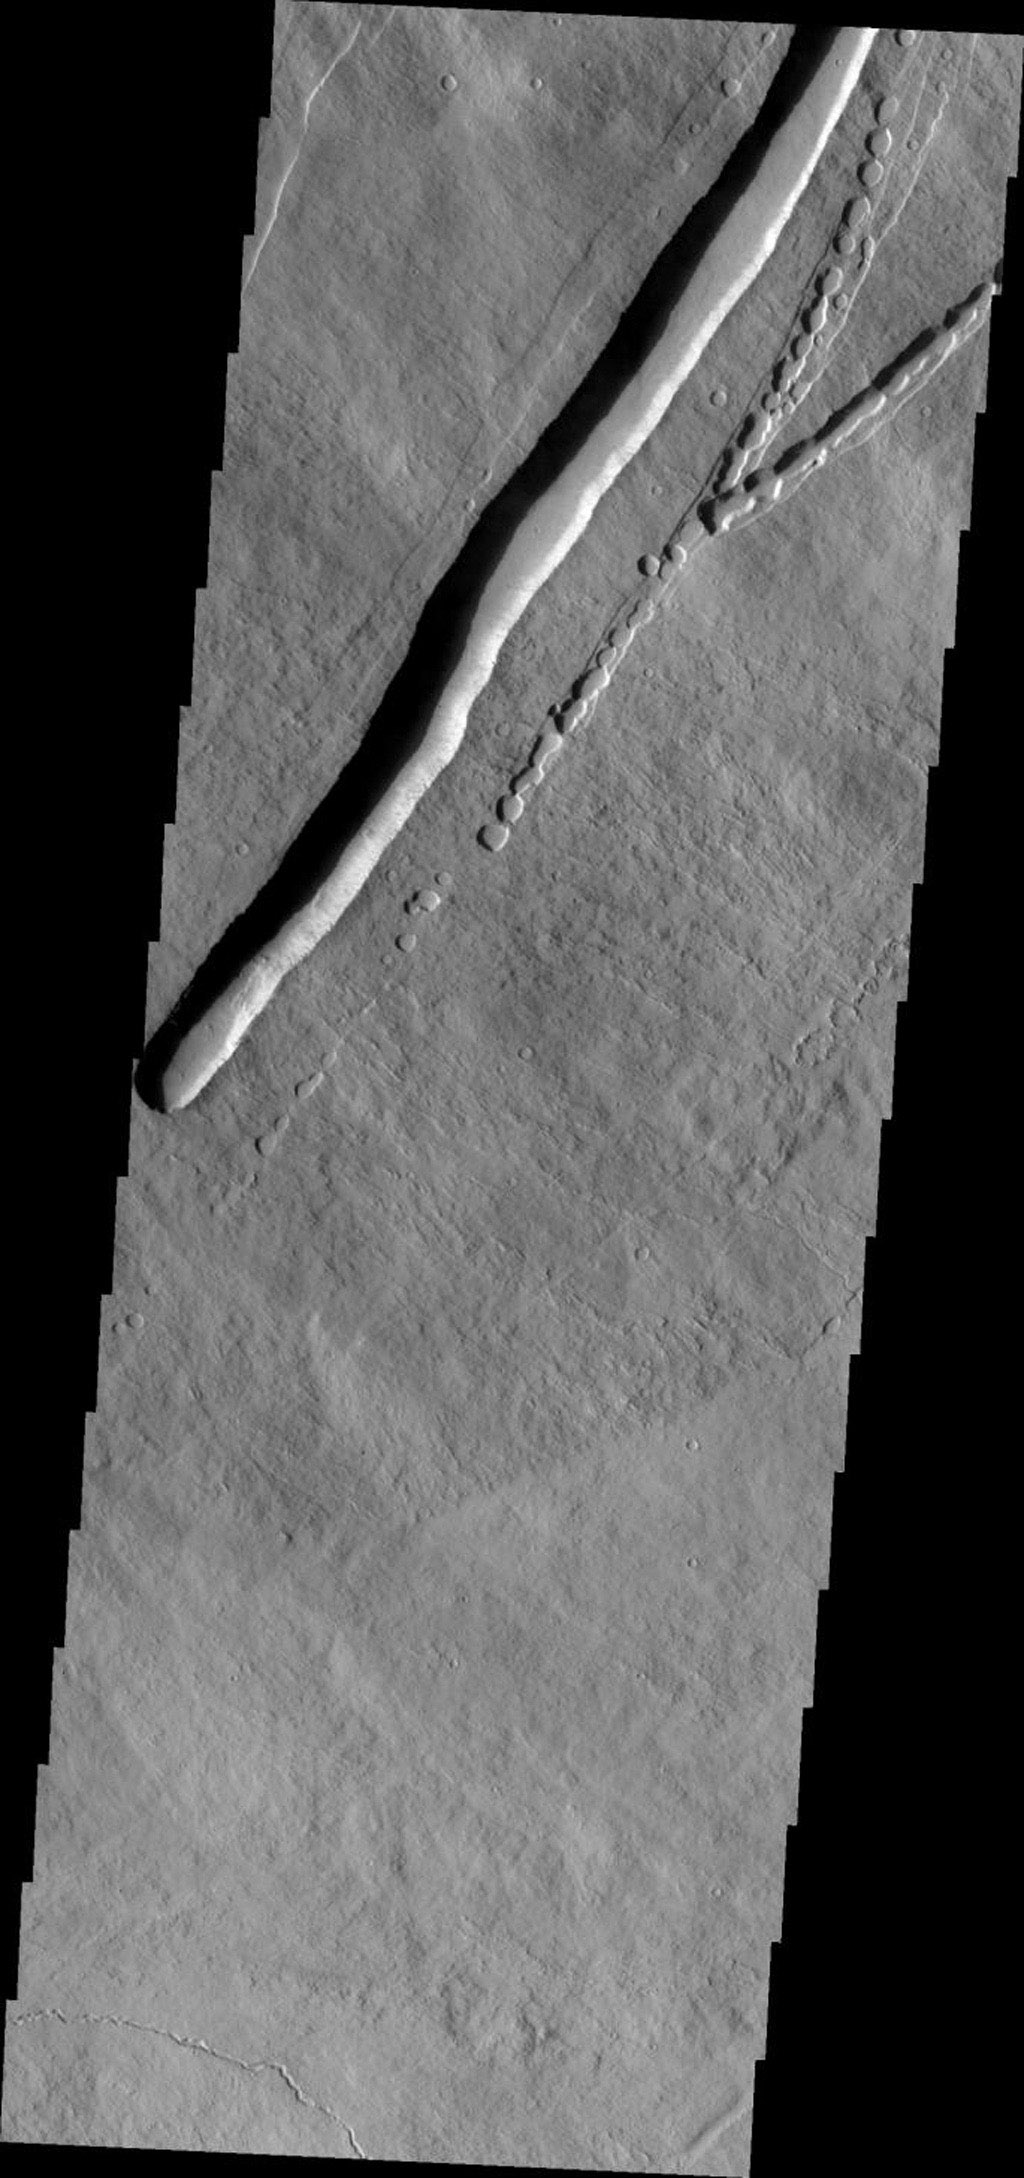 This image from NASA's Mars Odyssey shows the eastern flank of Pavonis Mons on Mars with a large collapse feature and the initiation of a similar feature with small collapses to the east.